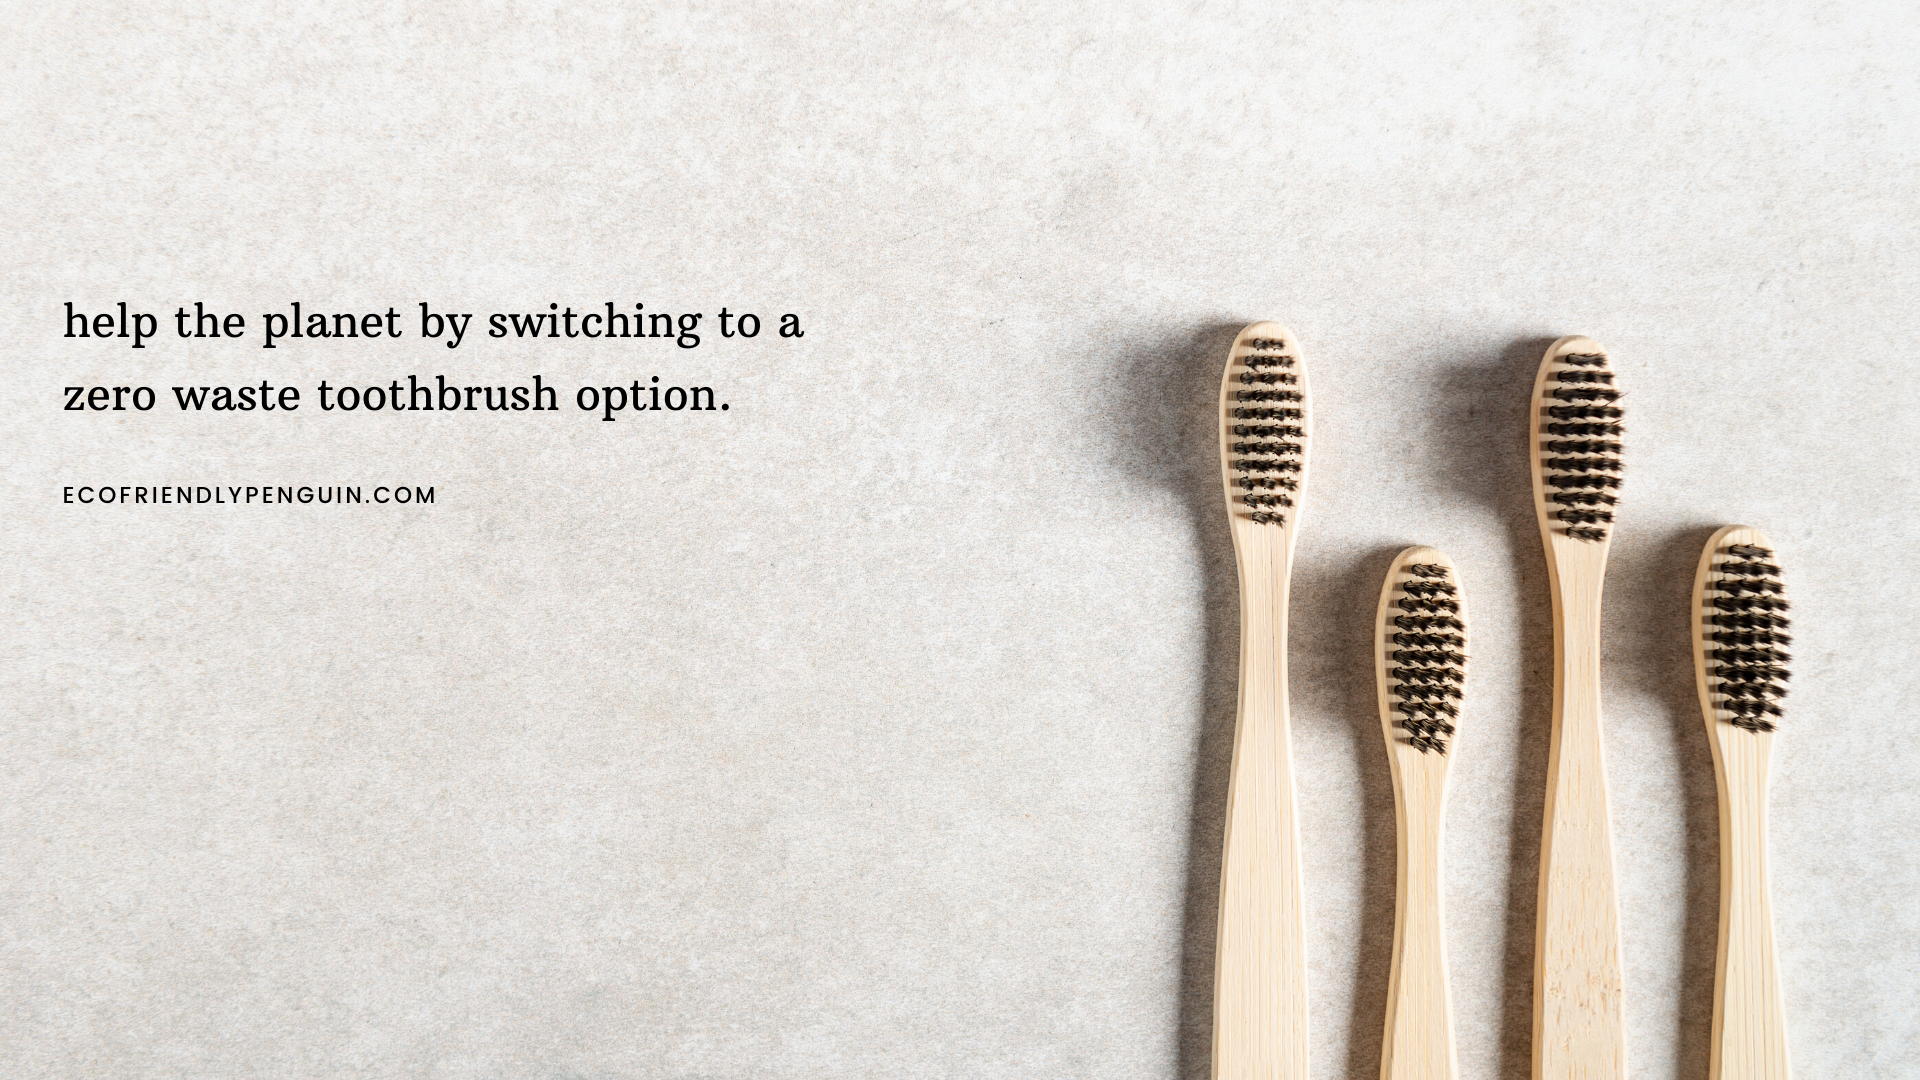 Bamboo Toothbrushes for a Zero Waste Toothbrush Option